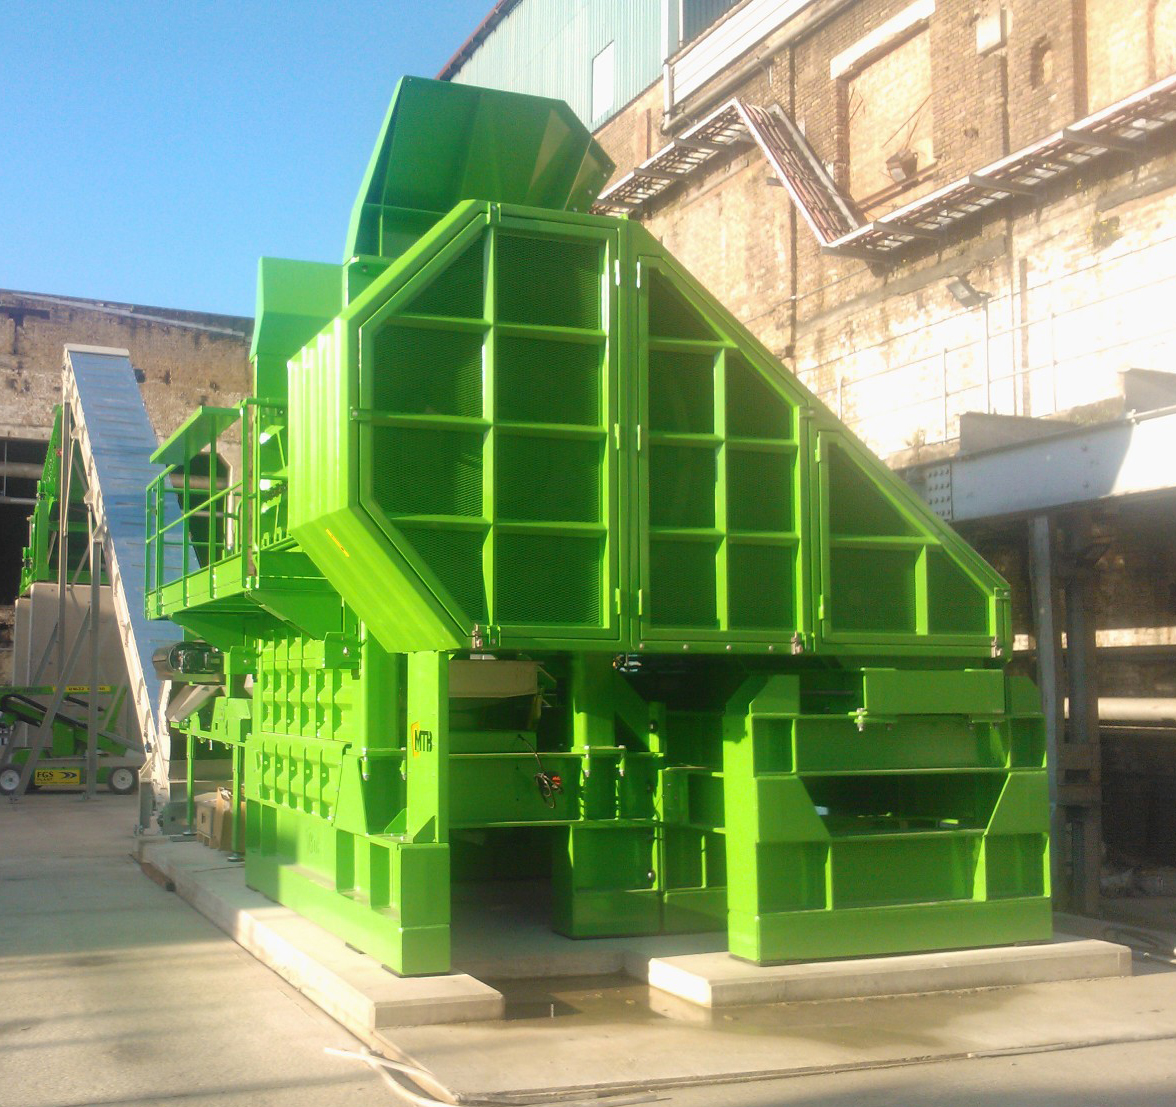 Countrystyle and DS Smith work together on specialist recycling for waste streams